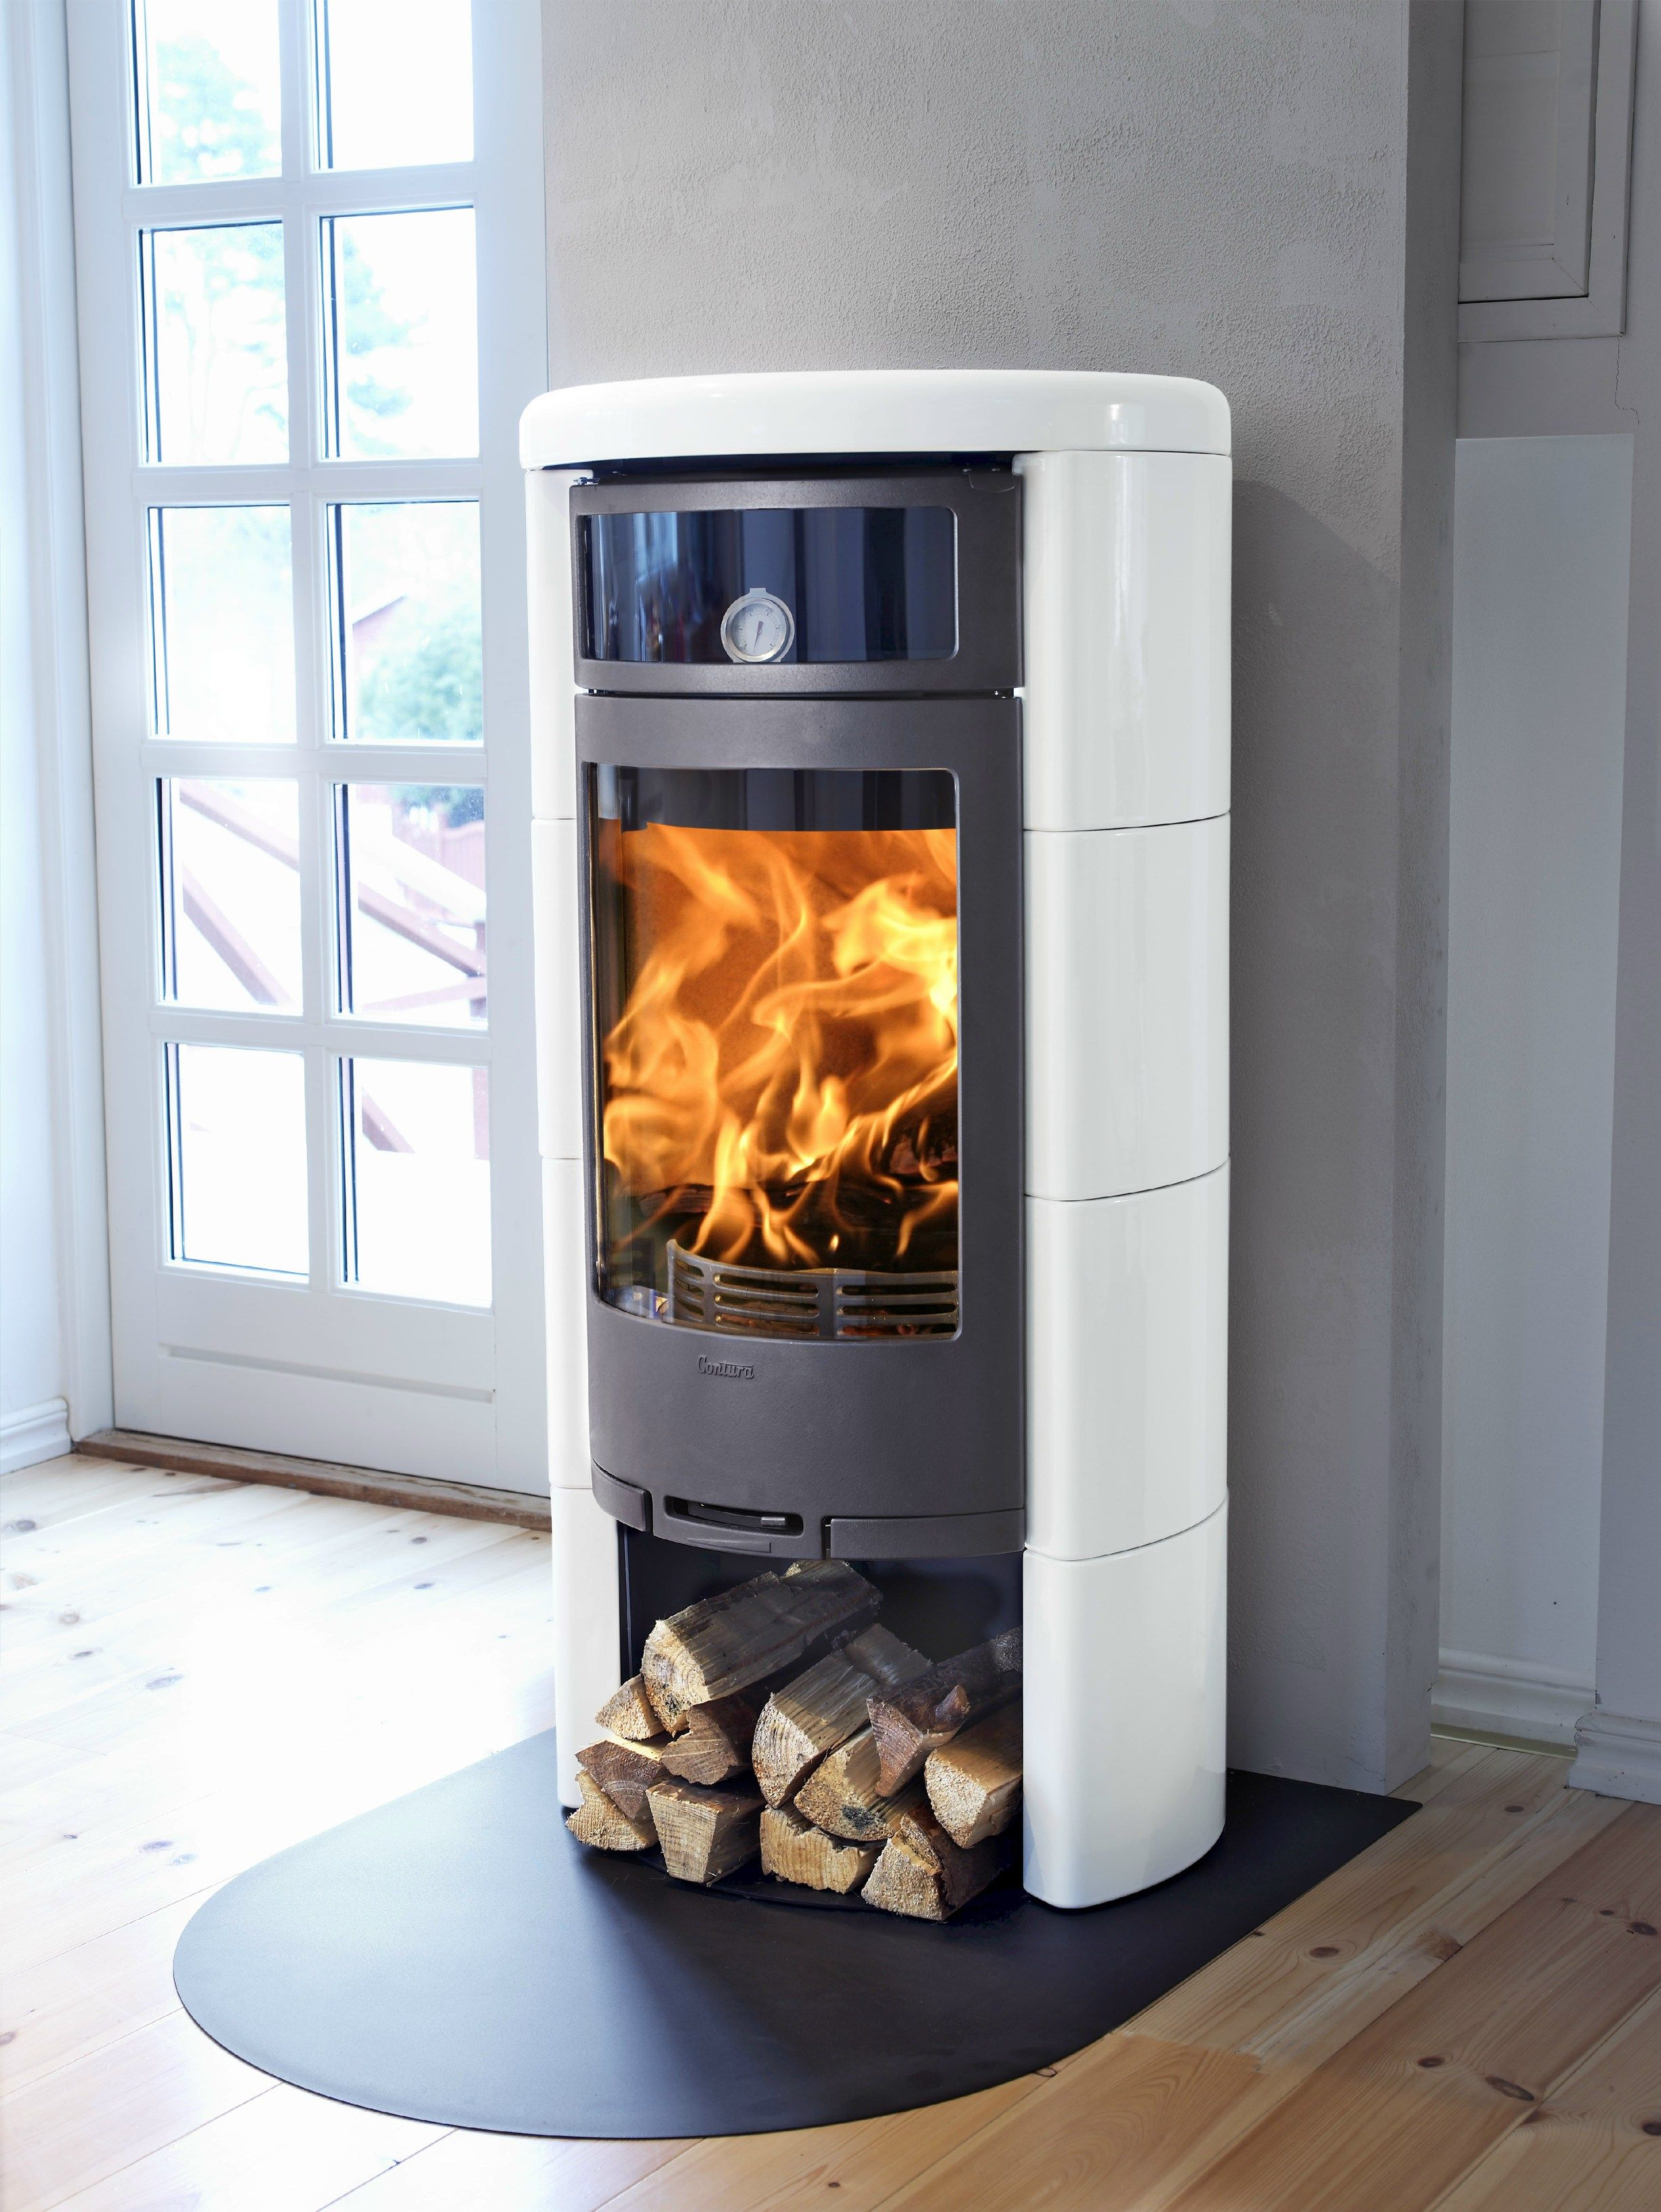 Contura Woodburning Stove with oven